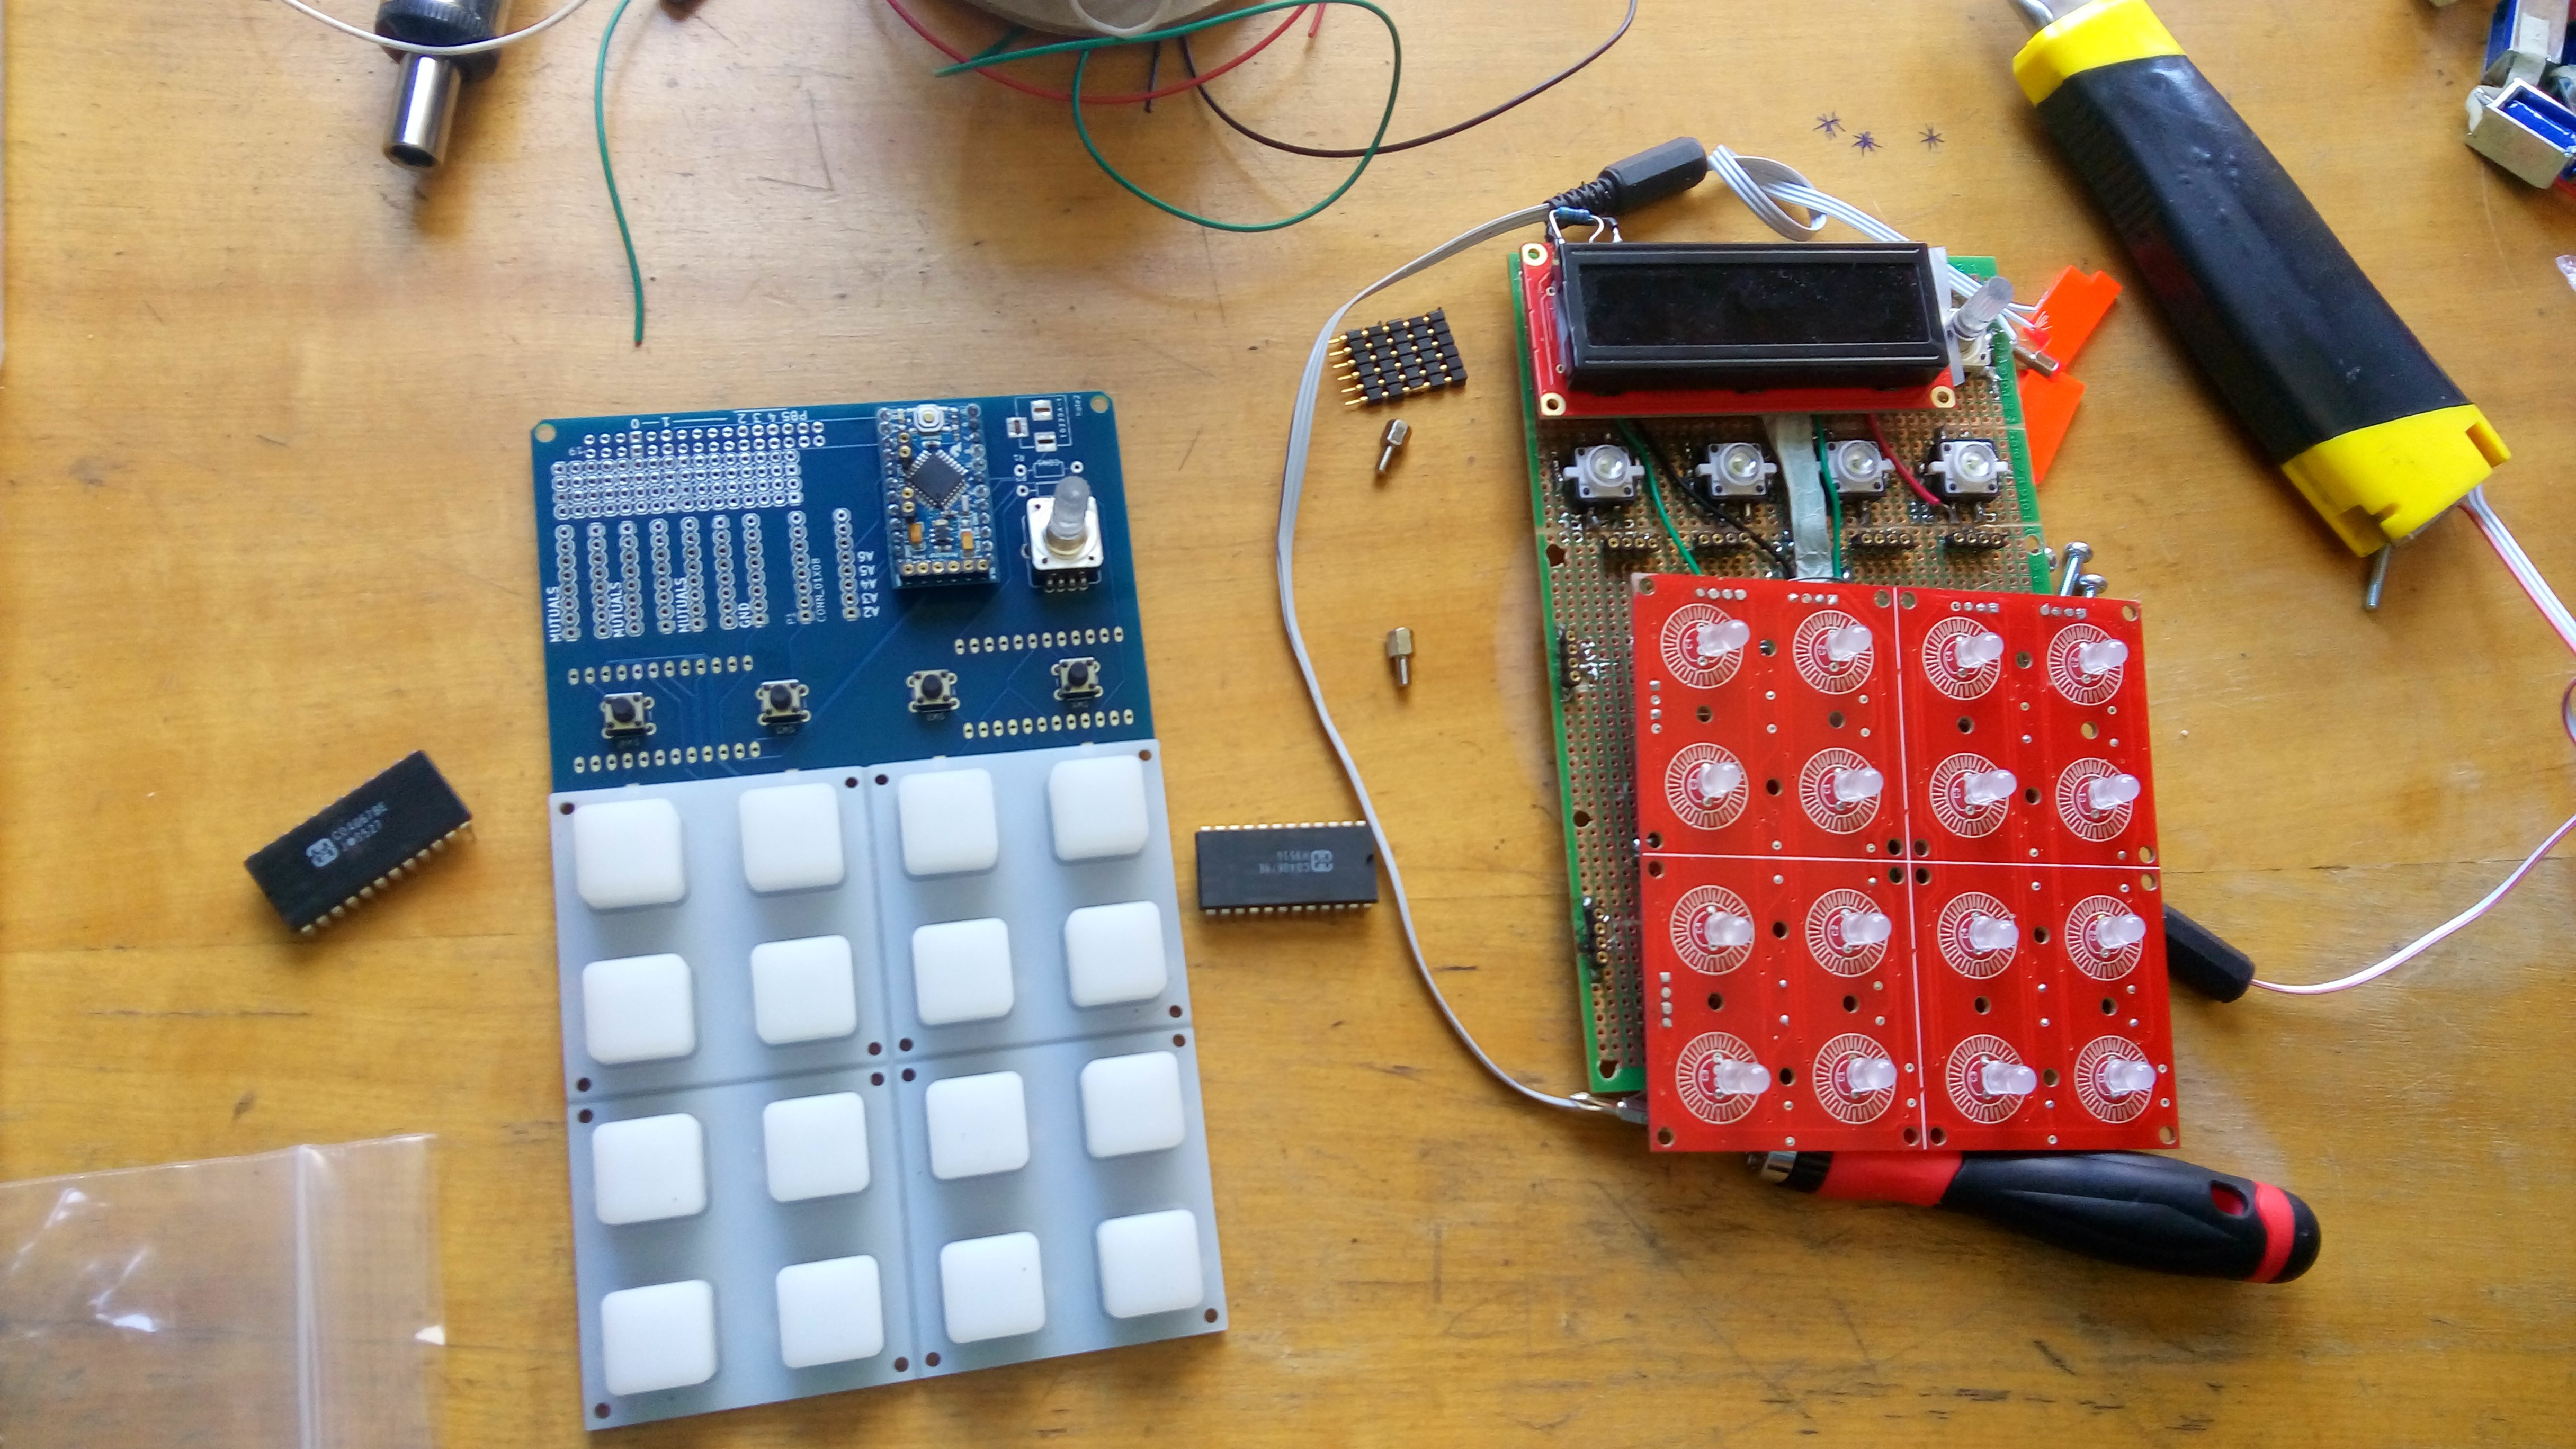 A Modular Sequencer For Electronic Music Circuit Bending Making By Rewiring Devices And Toys I Added Midi Input Output Plus The Respective Jack Connectors Ran Into Problem That Korg Have Different Pin Map